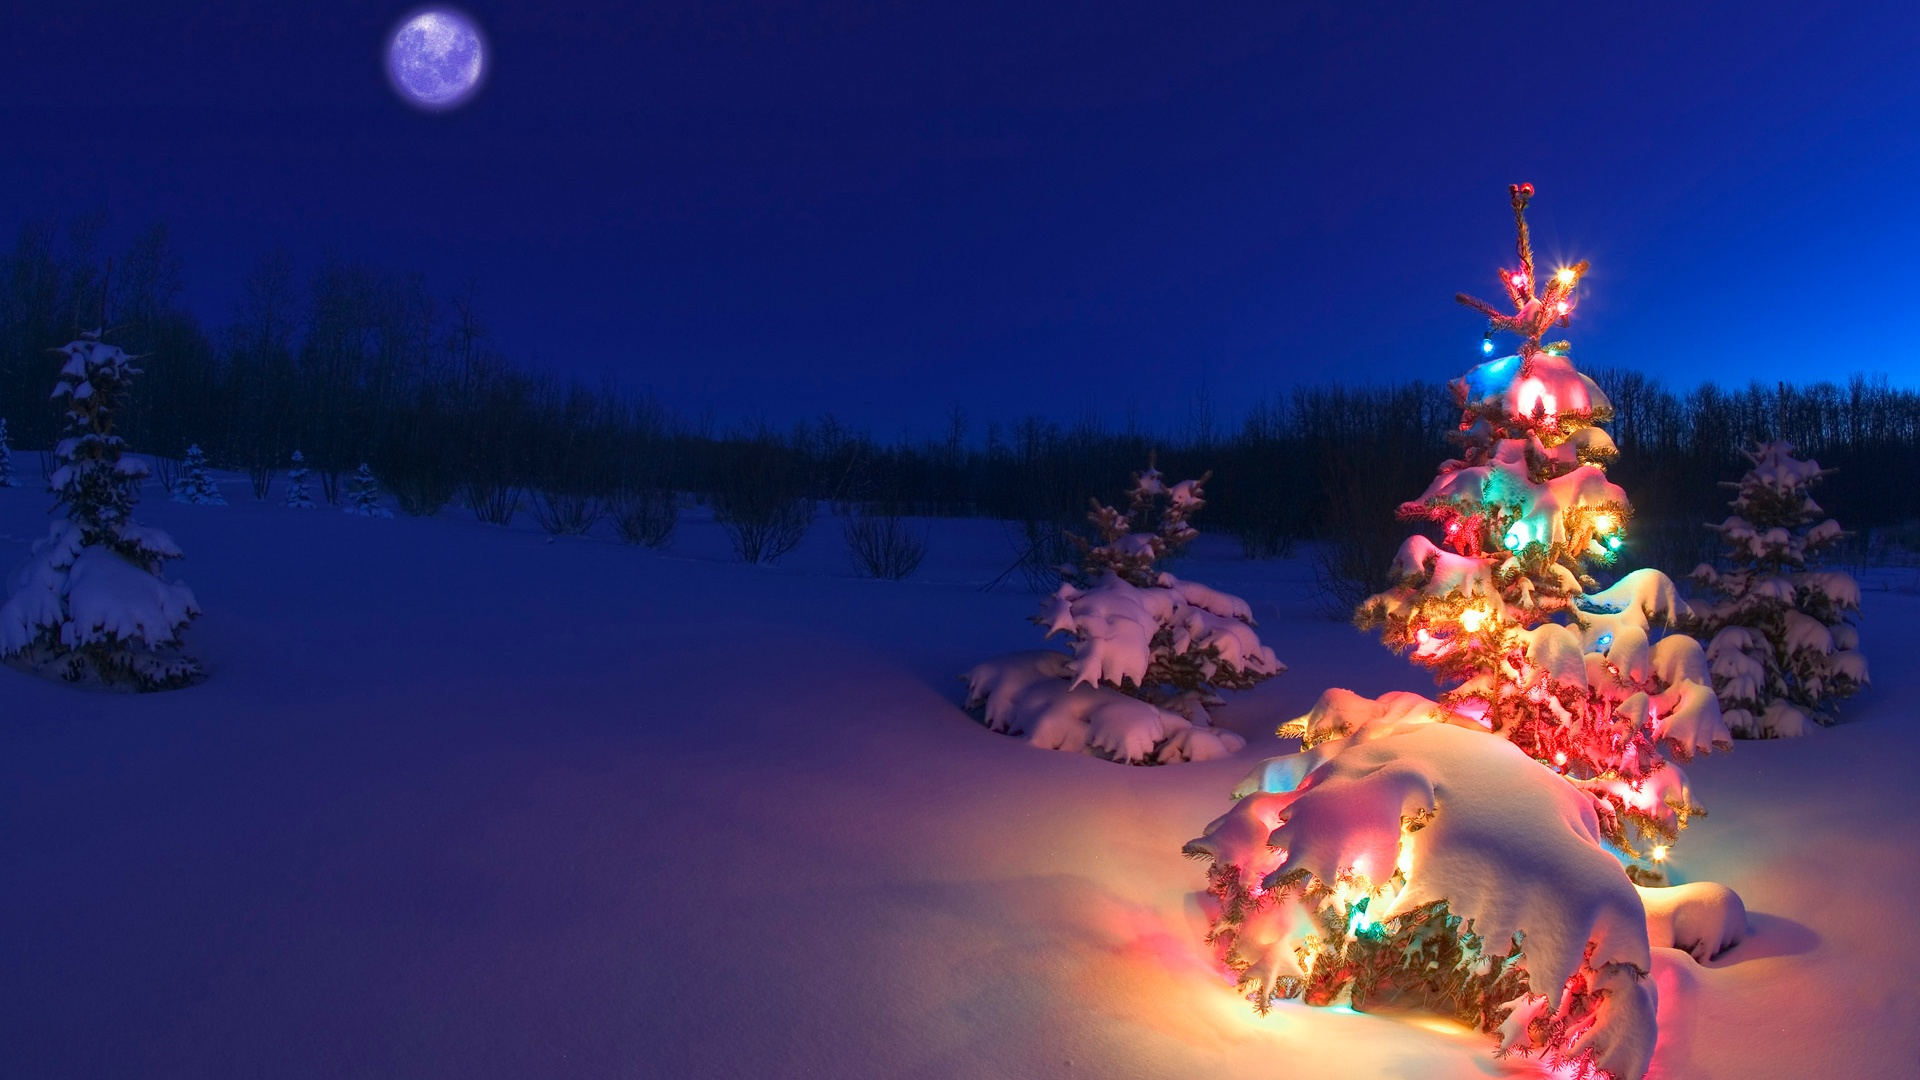 White Christmas Predicted Widely in 2015